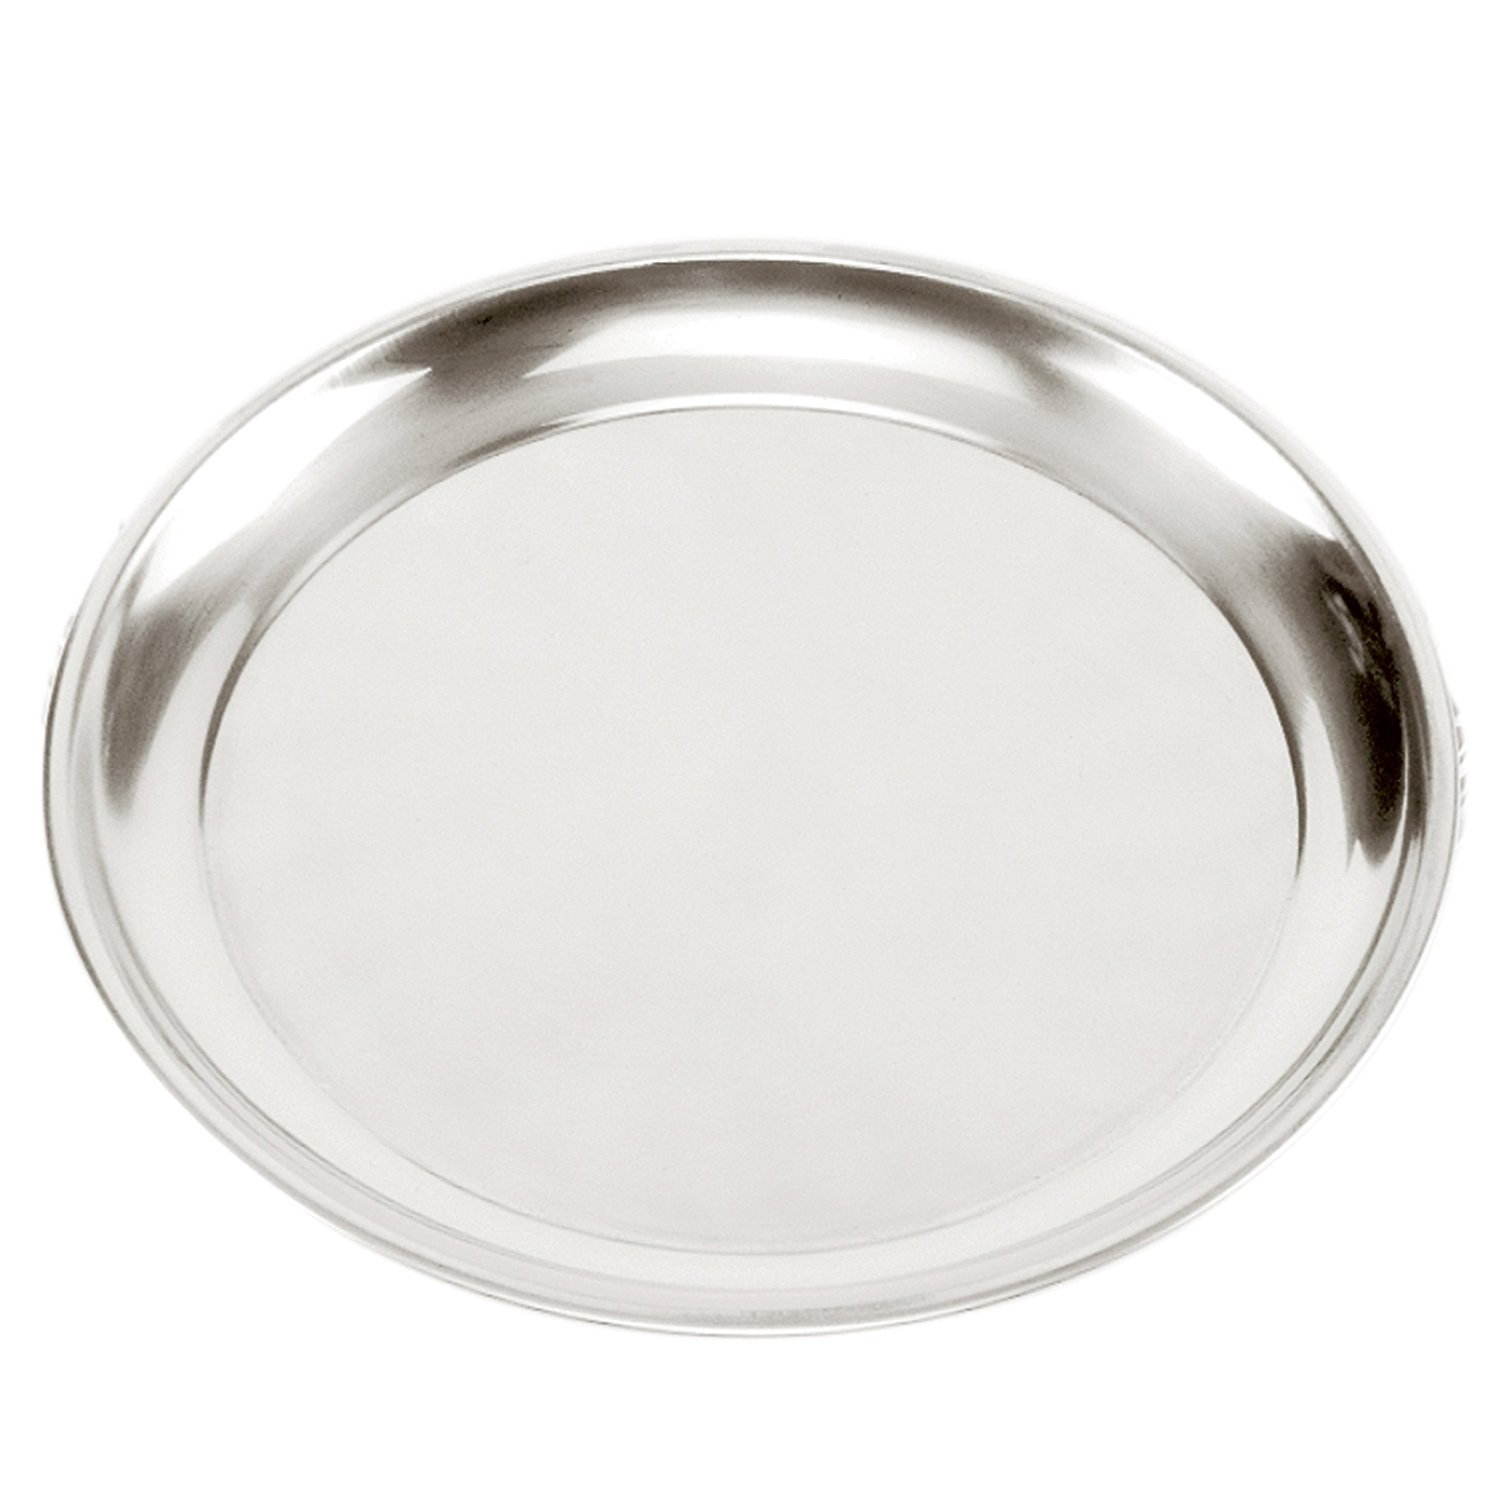 5672 Stainless Steel Pizza Pan, 13.5-Inch, Ss Heavy steel mirror Set Cake 2Pack Gauge 155 Made of Round... by